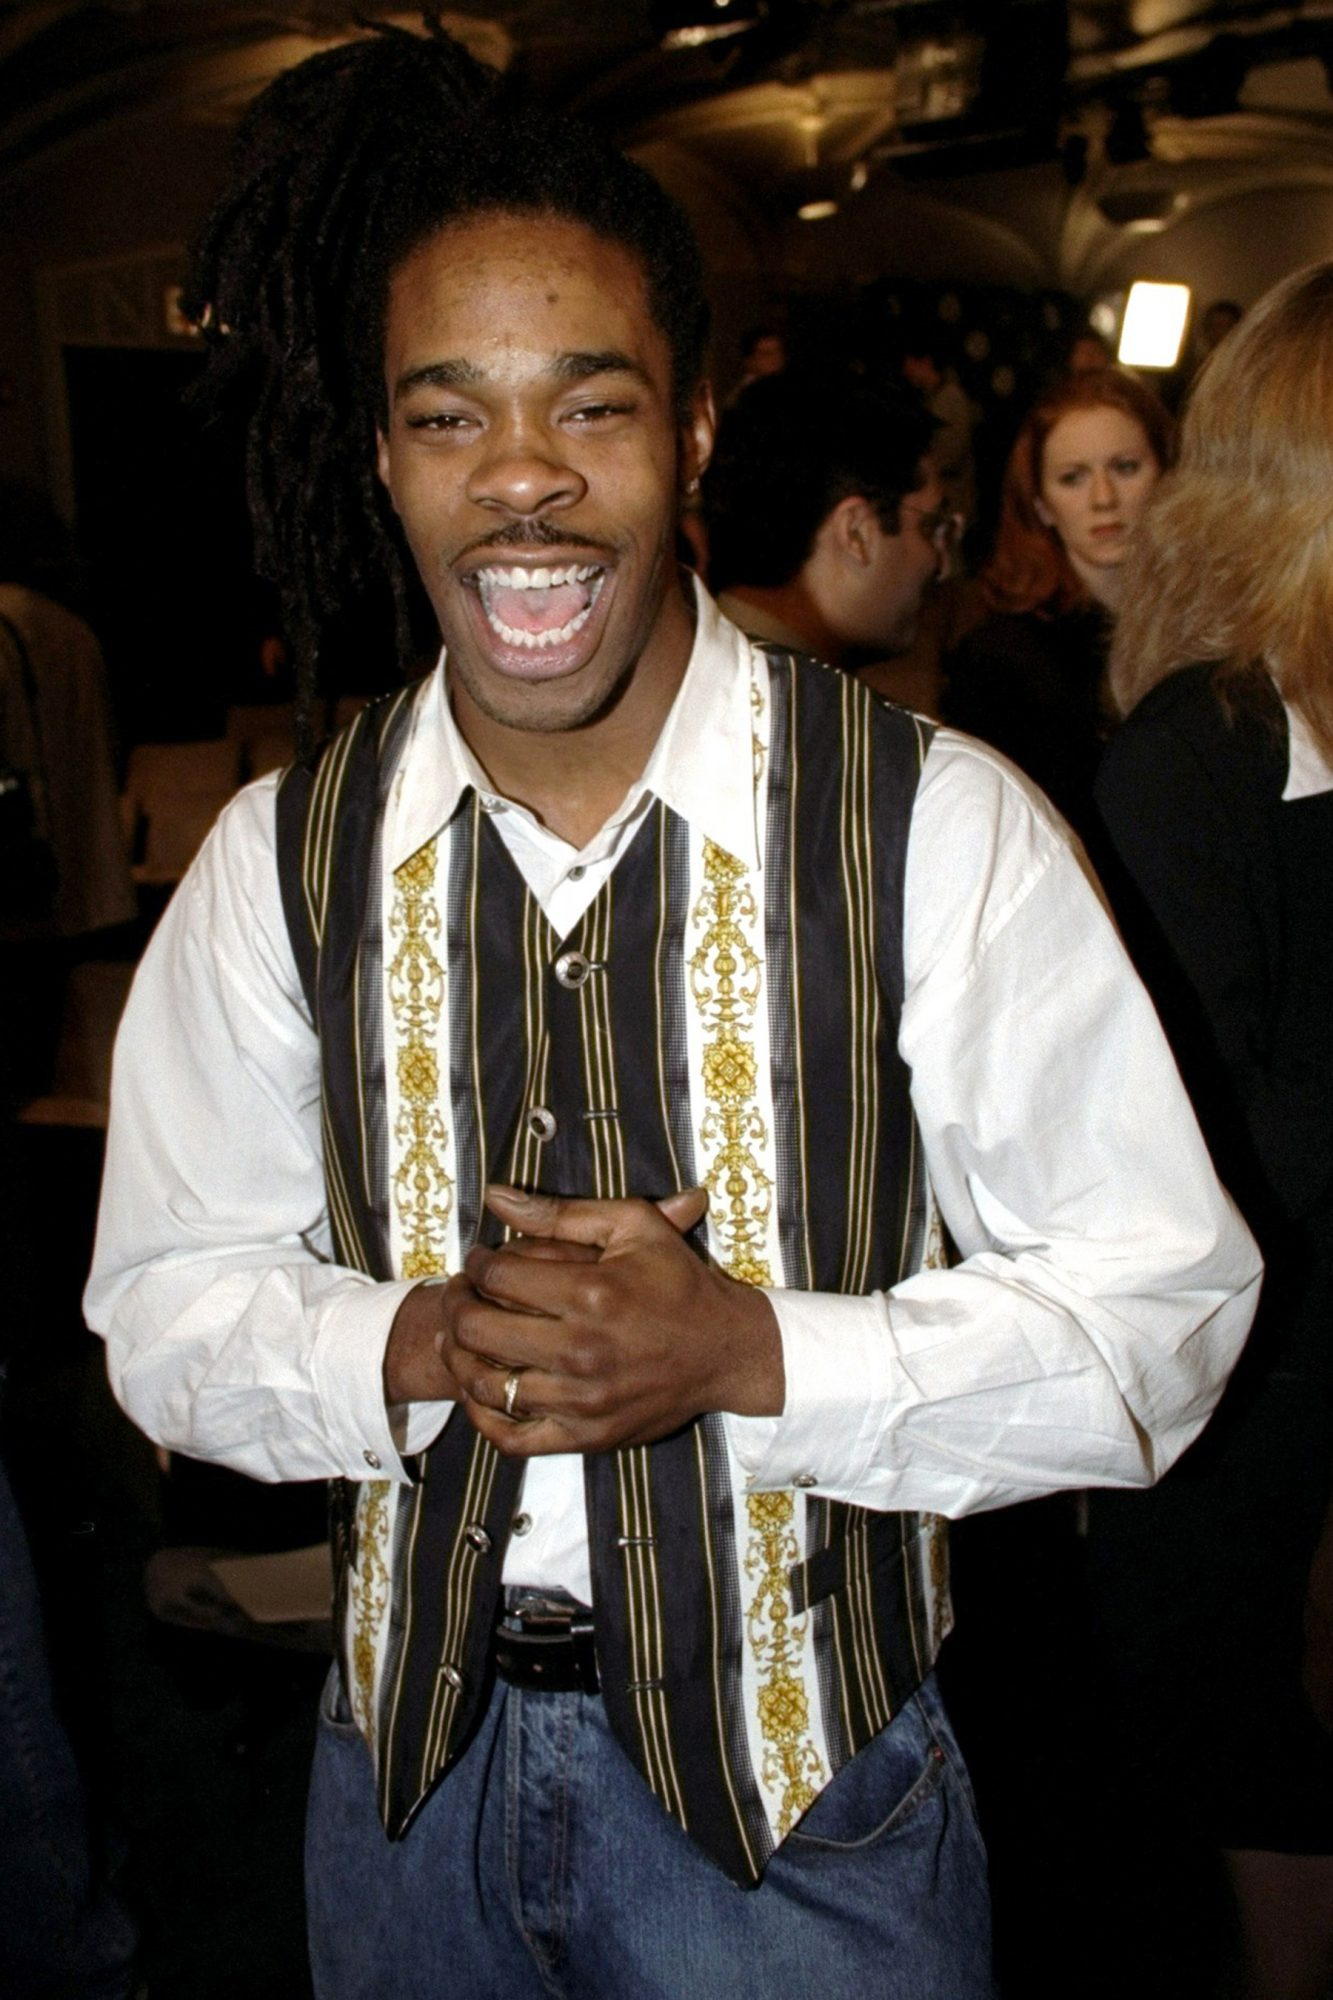 Rapper Busta Rhymes is all smiles after being nominated for